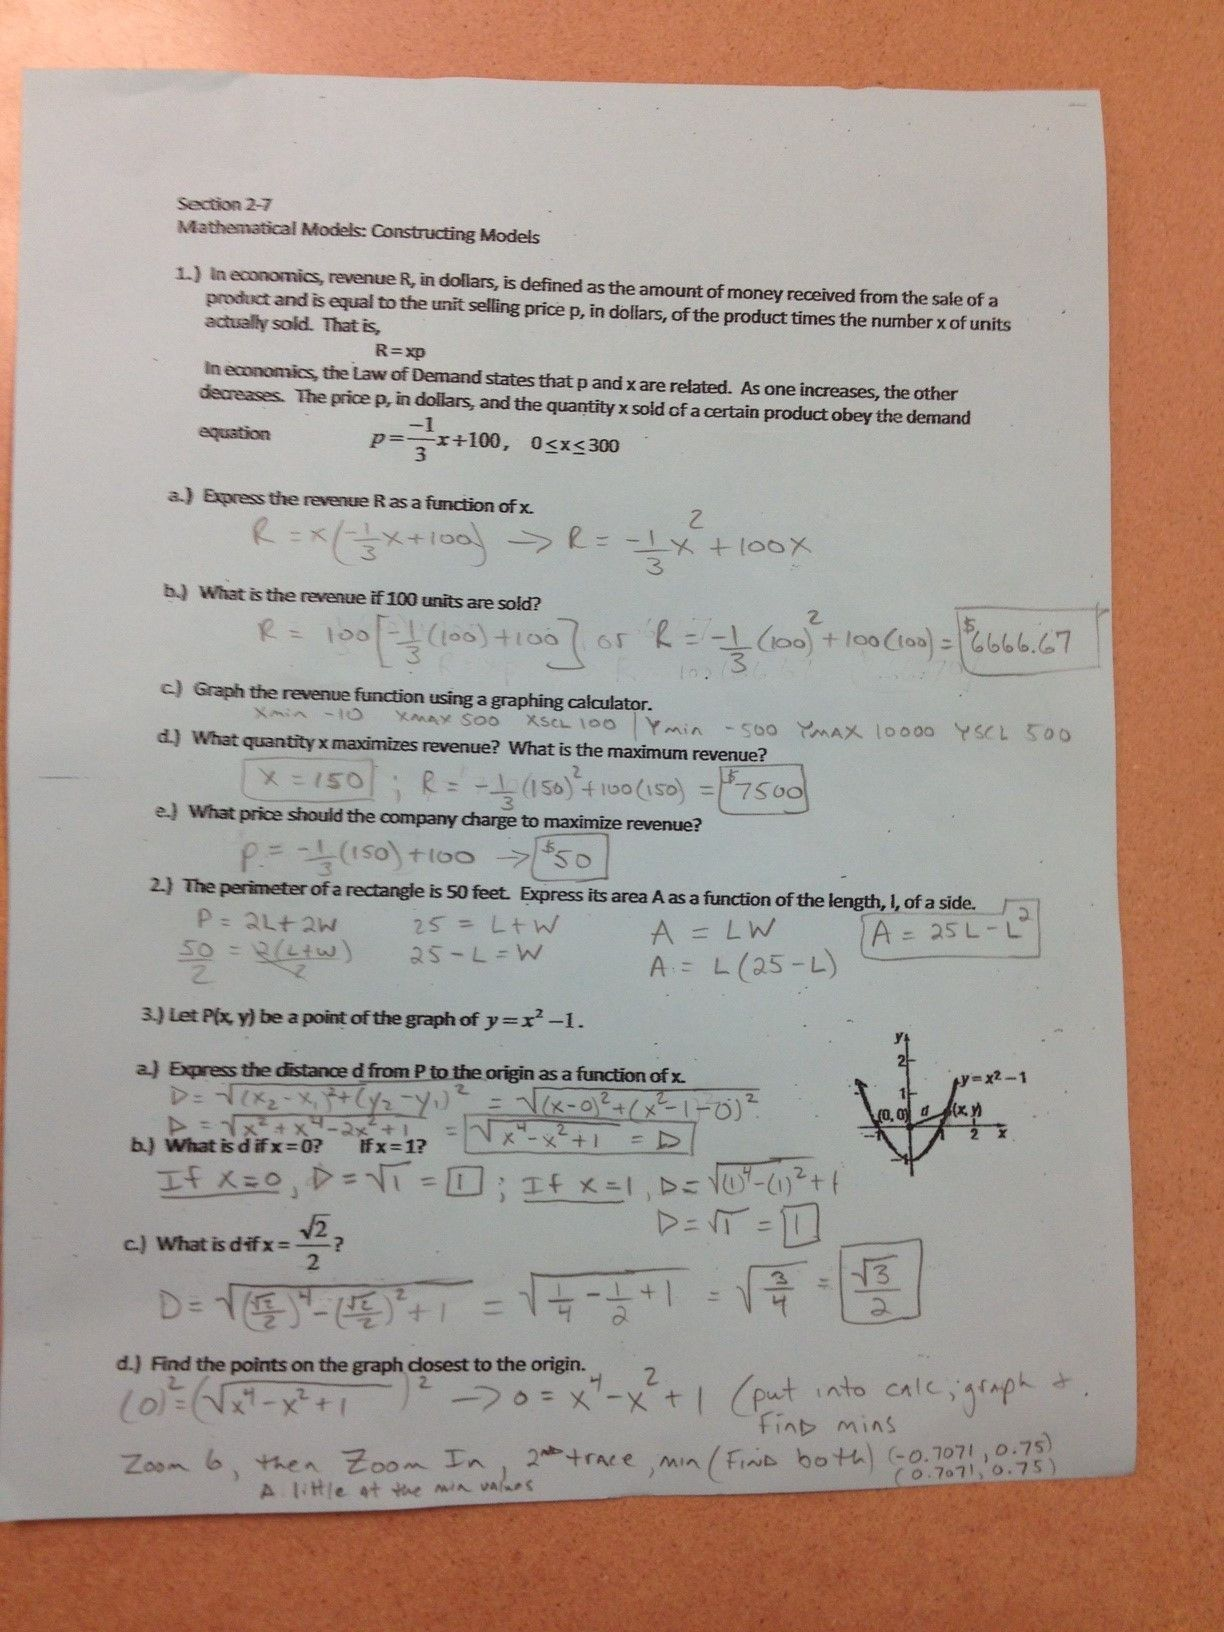 25 New Math Models Worksheet 41 Relations And Functions